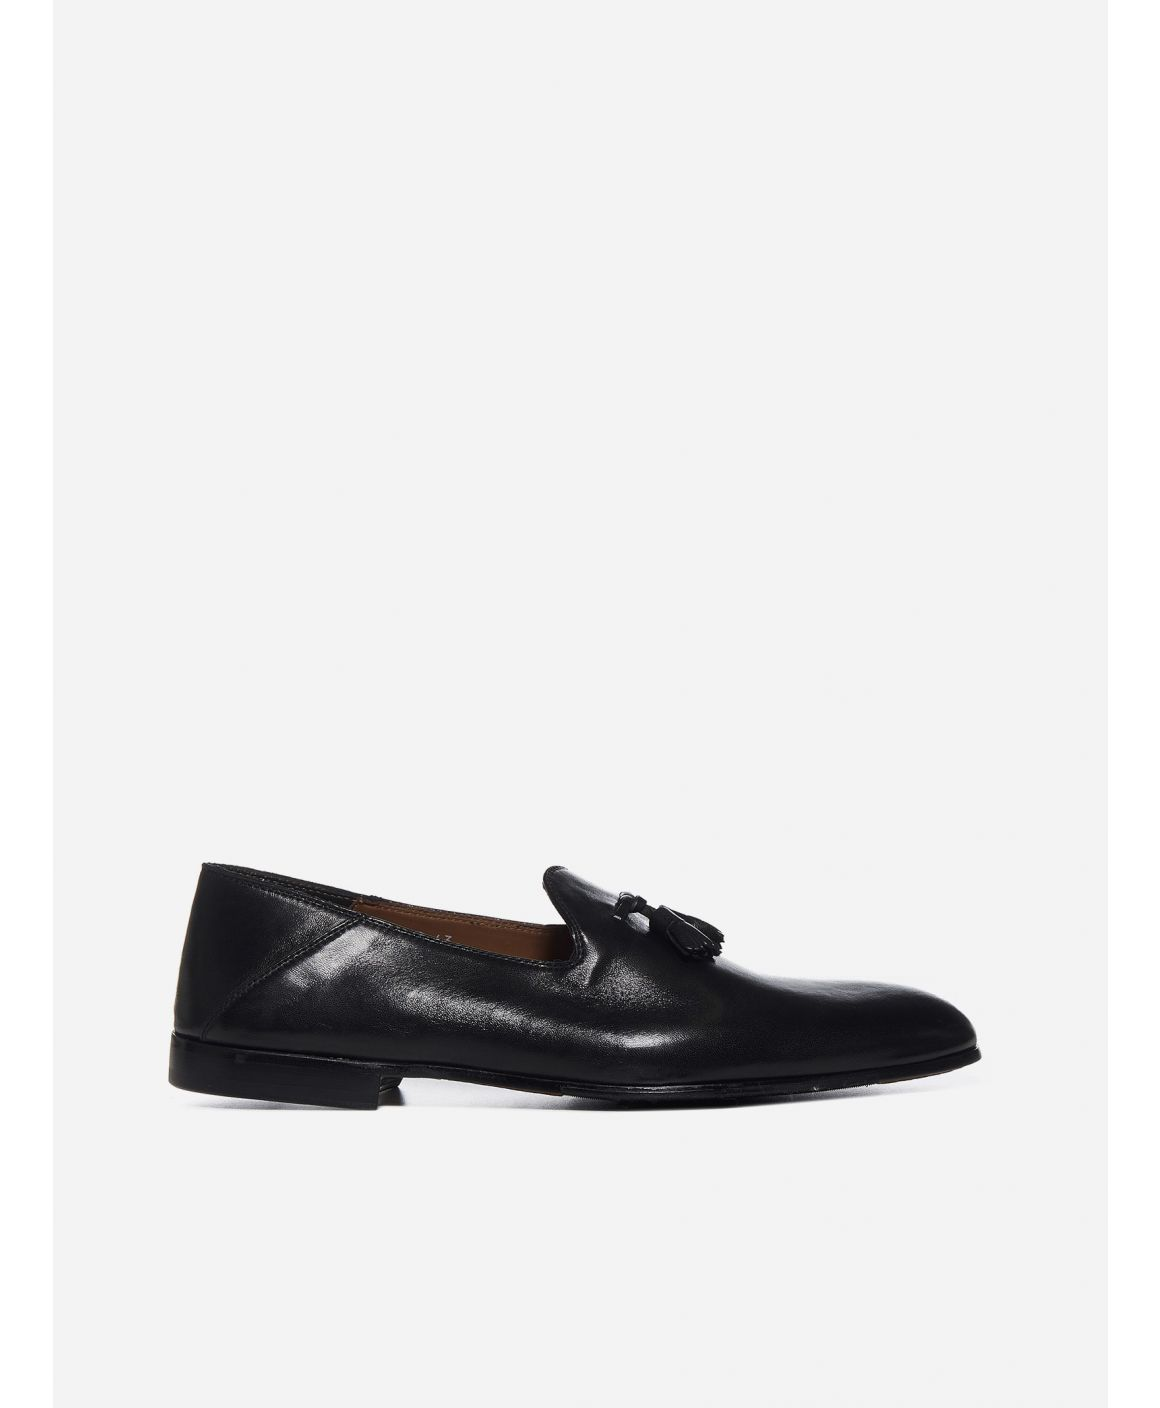 Tessel leather loafers